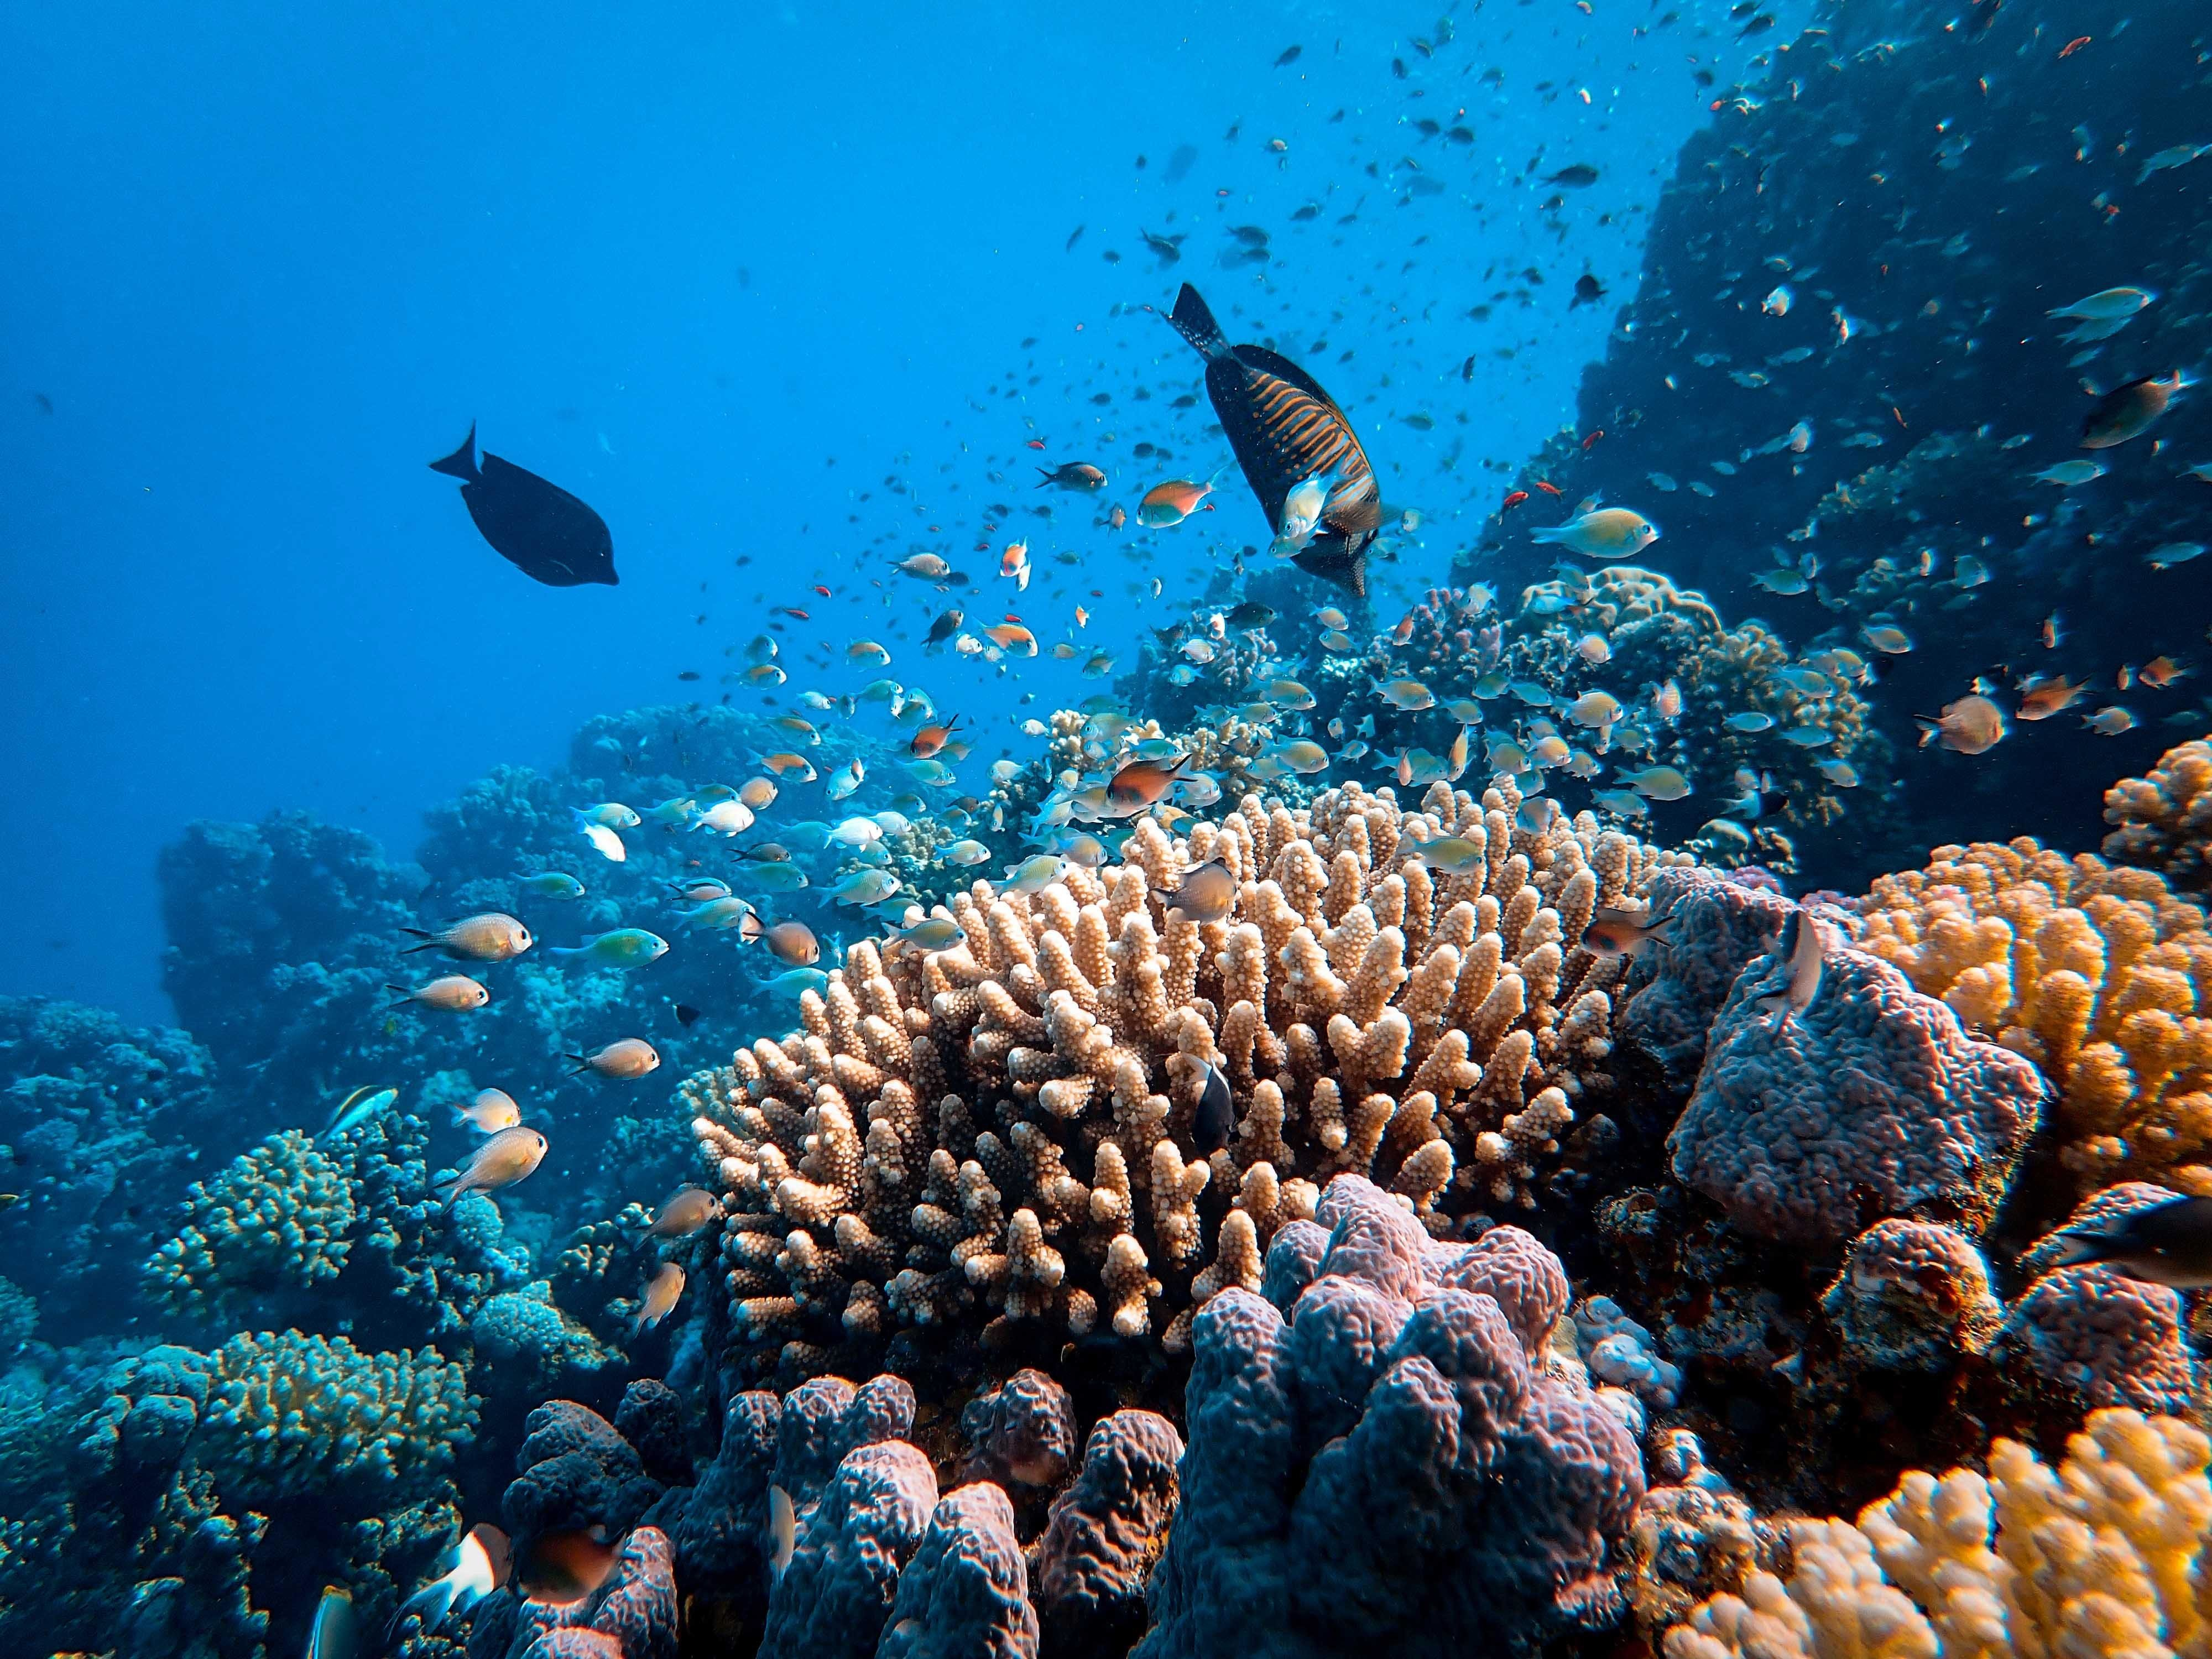 Climate change is negatively affecting marine ecosystems, like this coral reef and these fishes.